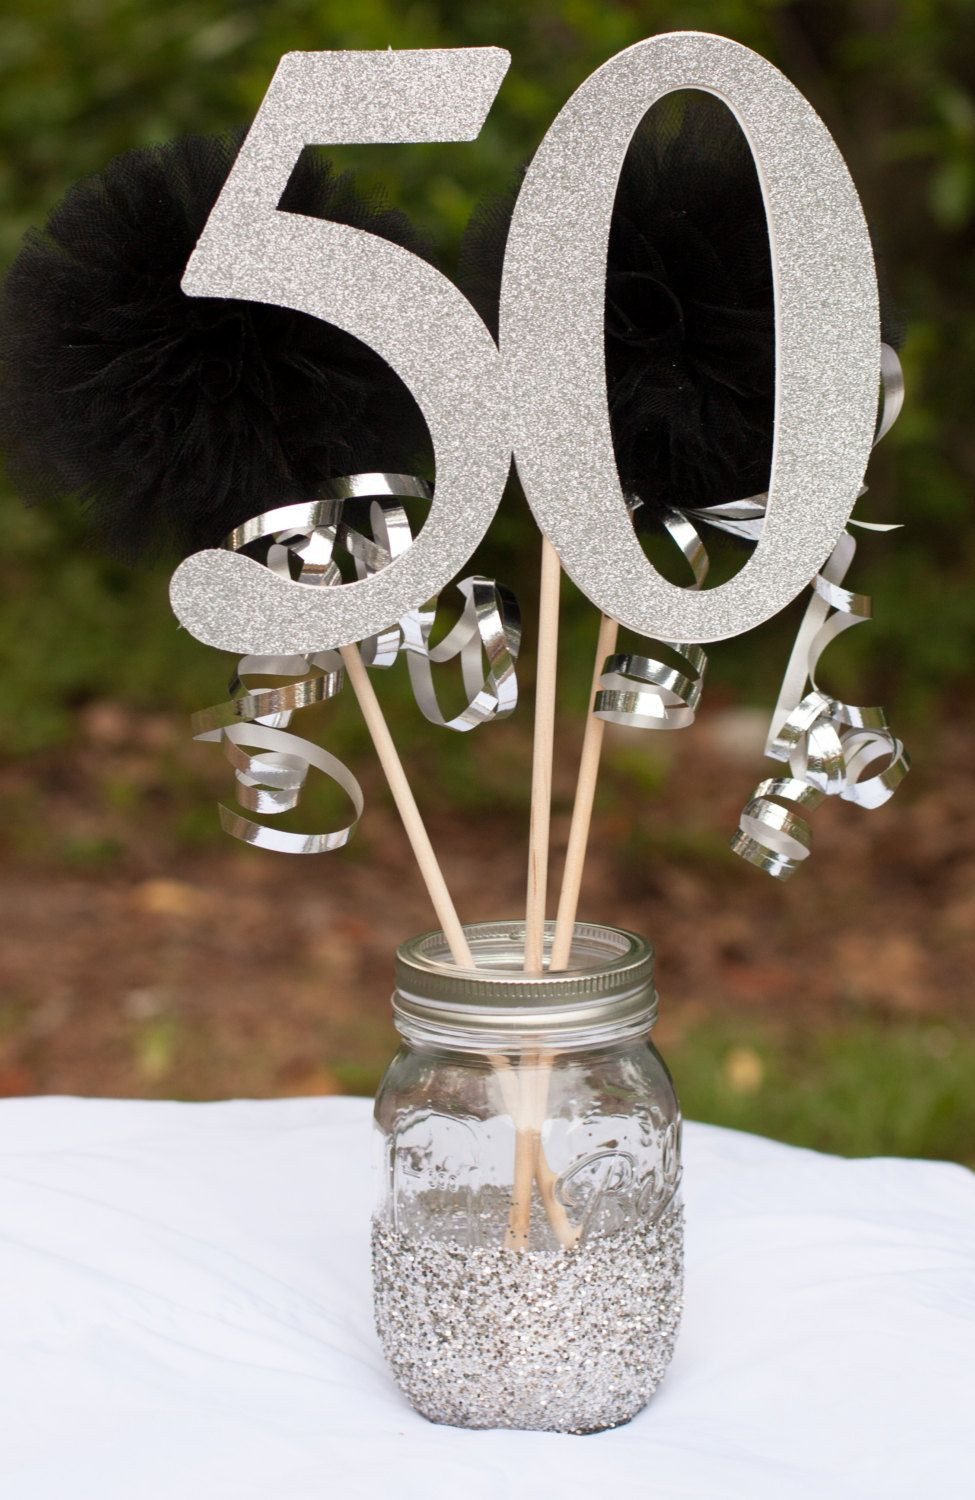 Best ideas about 50th Birthday Table Decorations . Save or Pin Anniversary Party Decorations 40th 50th 60th Birthday Now.